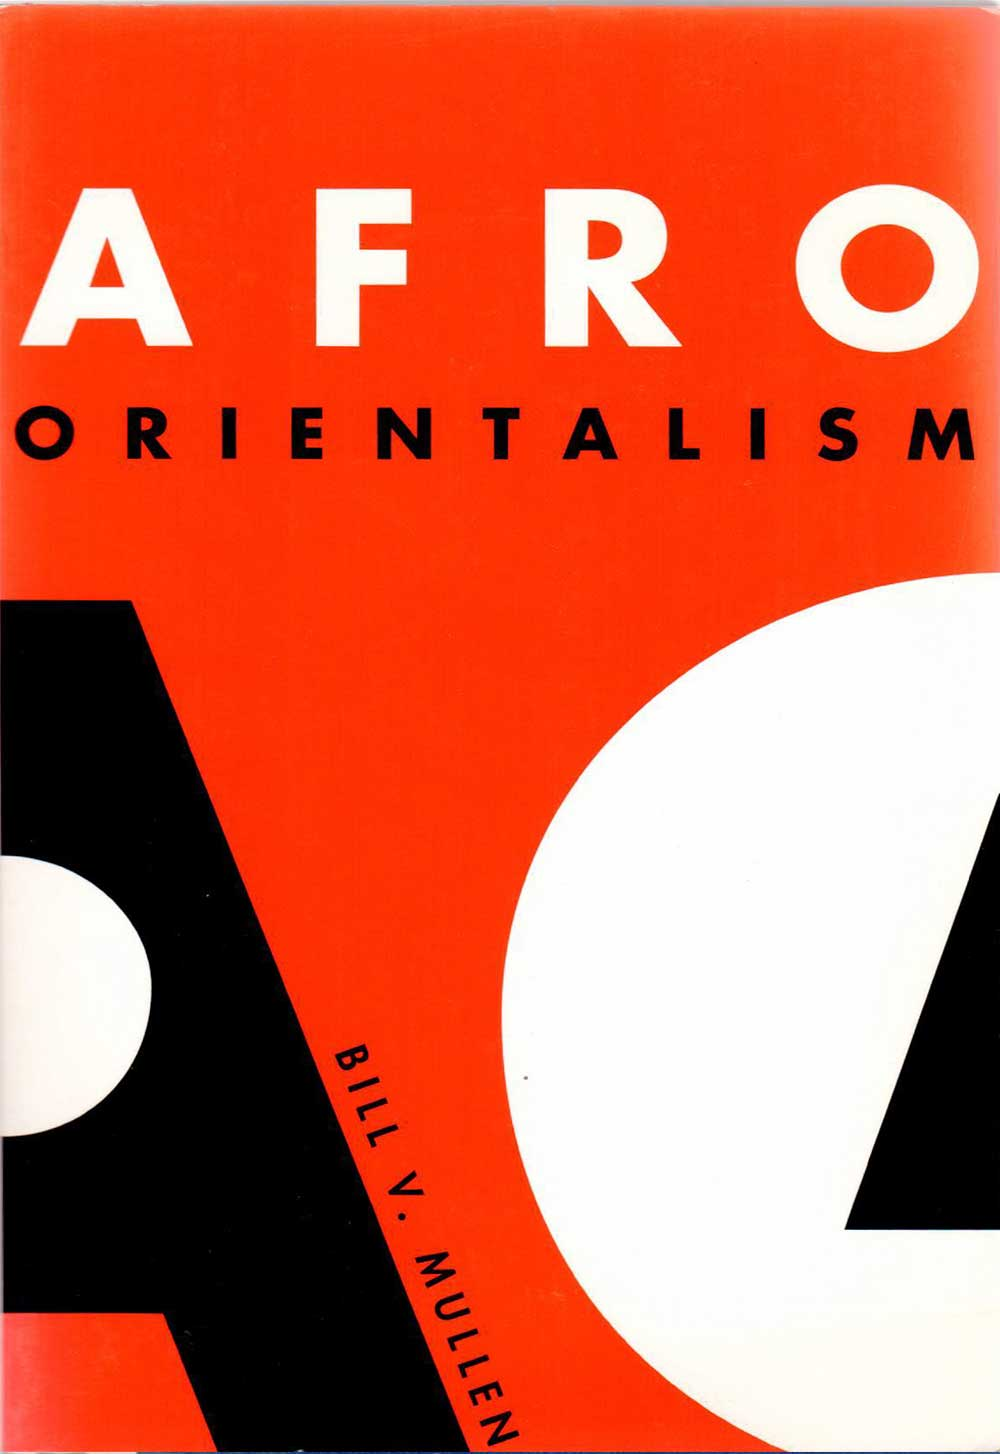 mullen-book-cover6-afro-orient-1000px (1).jpg